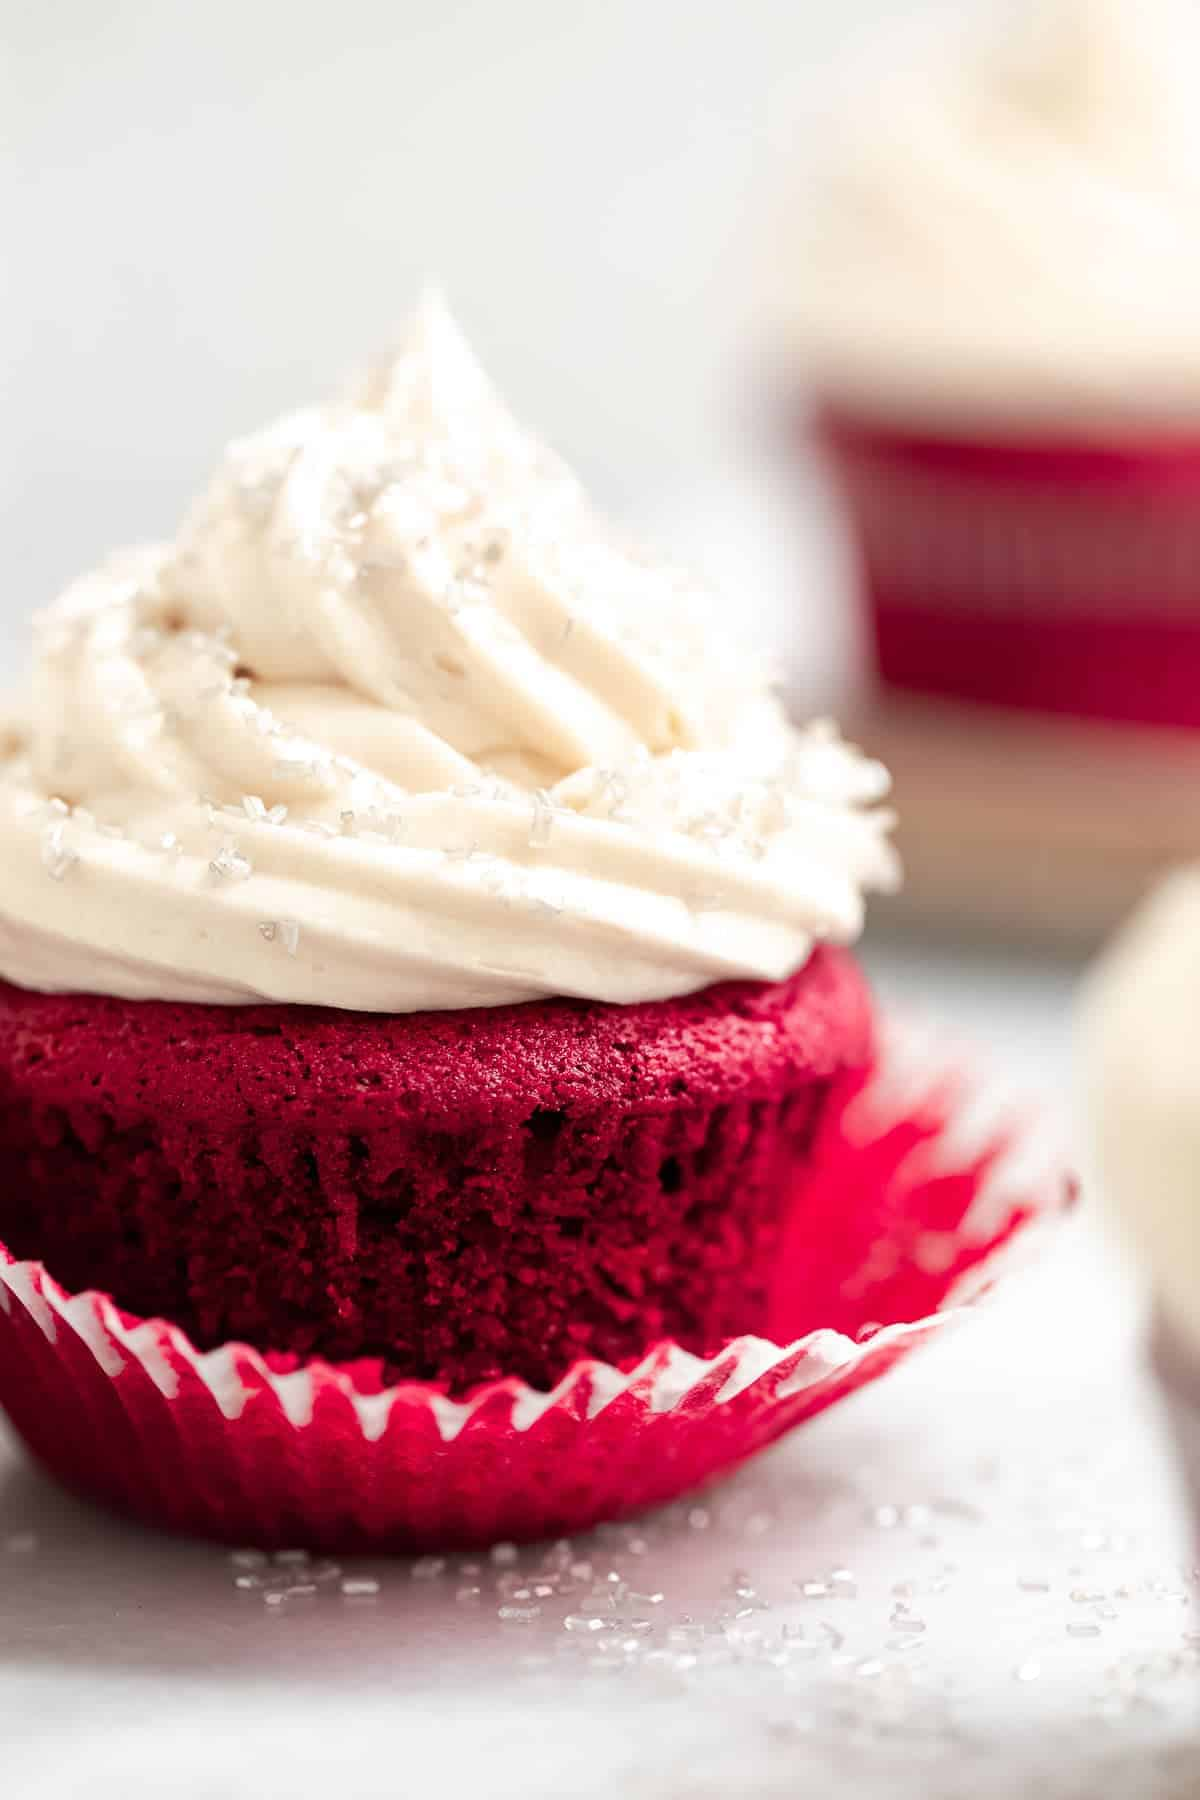 up close image of one cupcake with buttercream on top